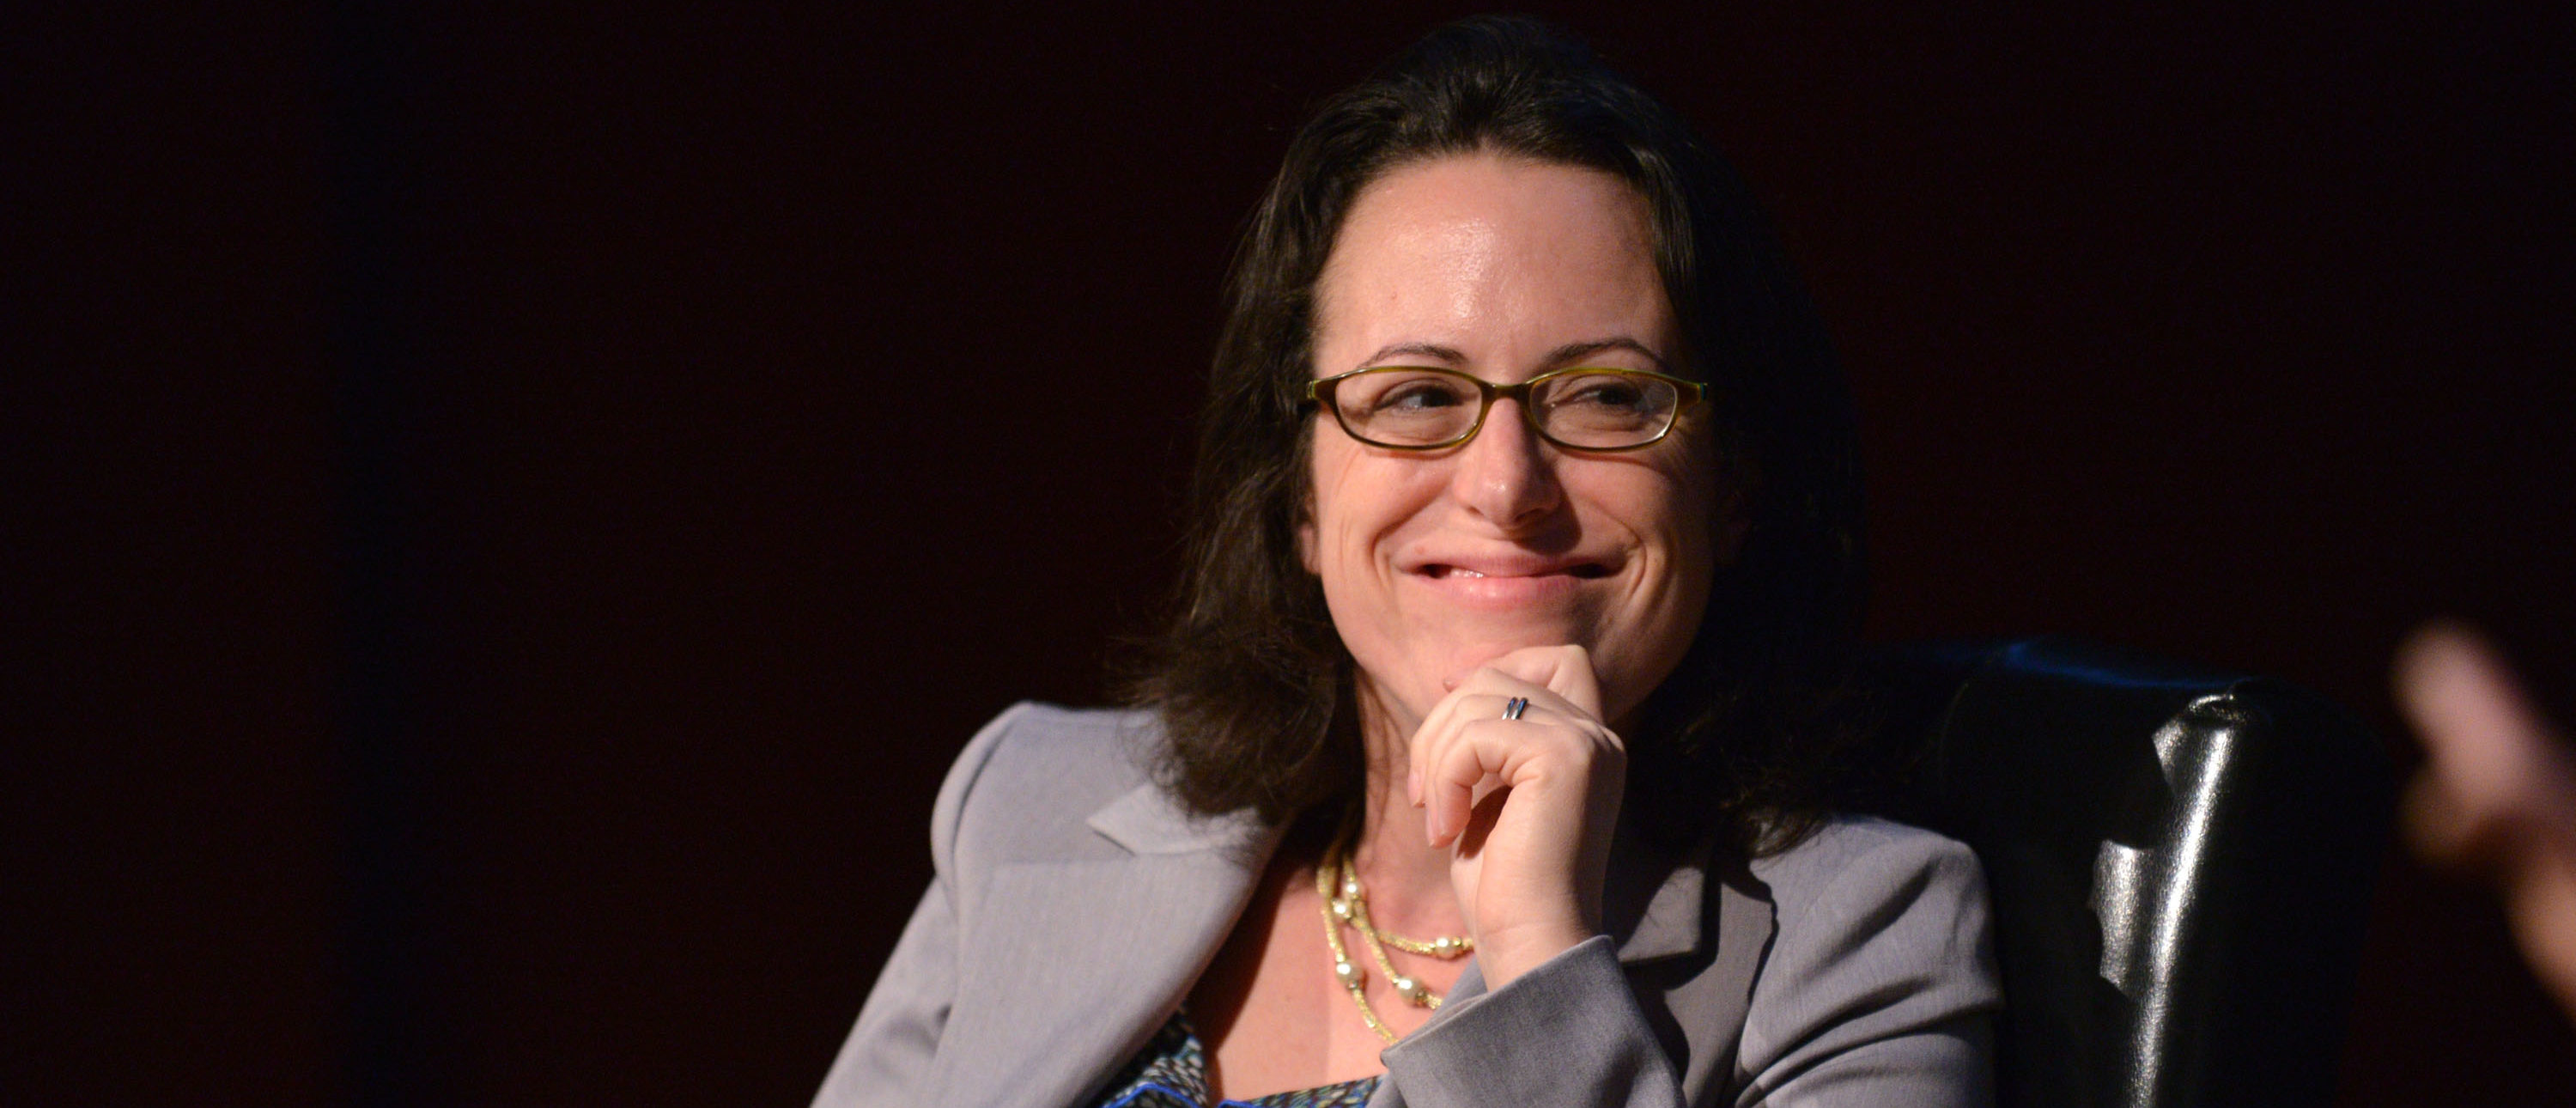 Maggie Haberman (Getty Images)